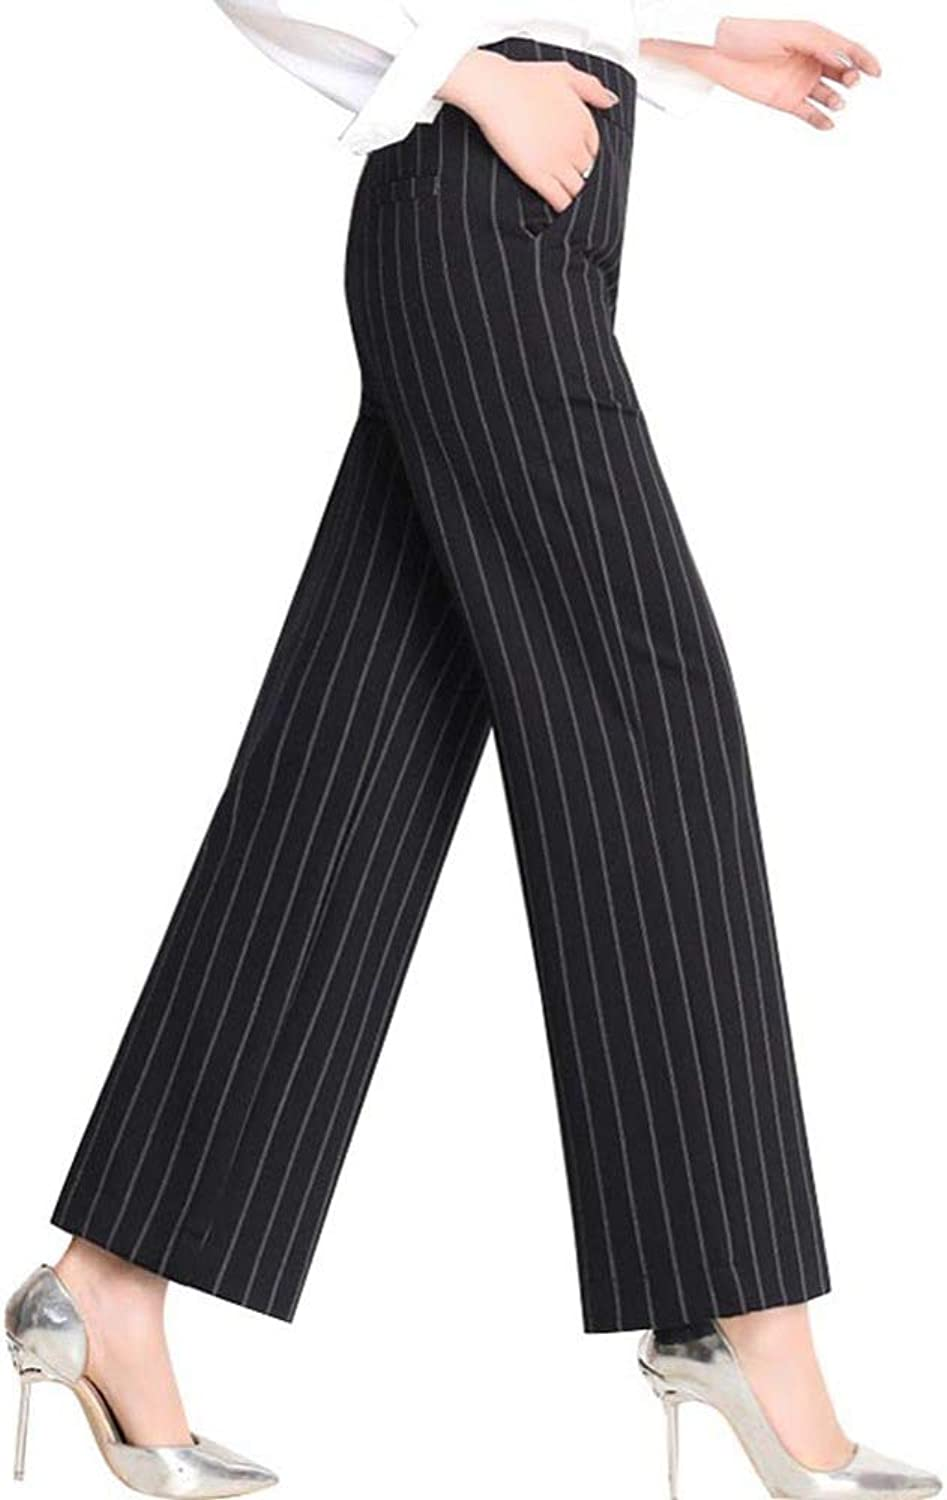 HOQTUM WideLeg Pants Elastic Waist Spring and Summer Trousers Loose high Waist Ladies Casual Pants Striped Stretch Pants